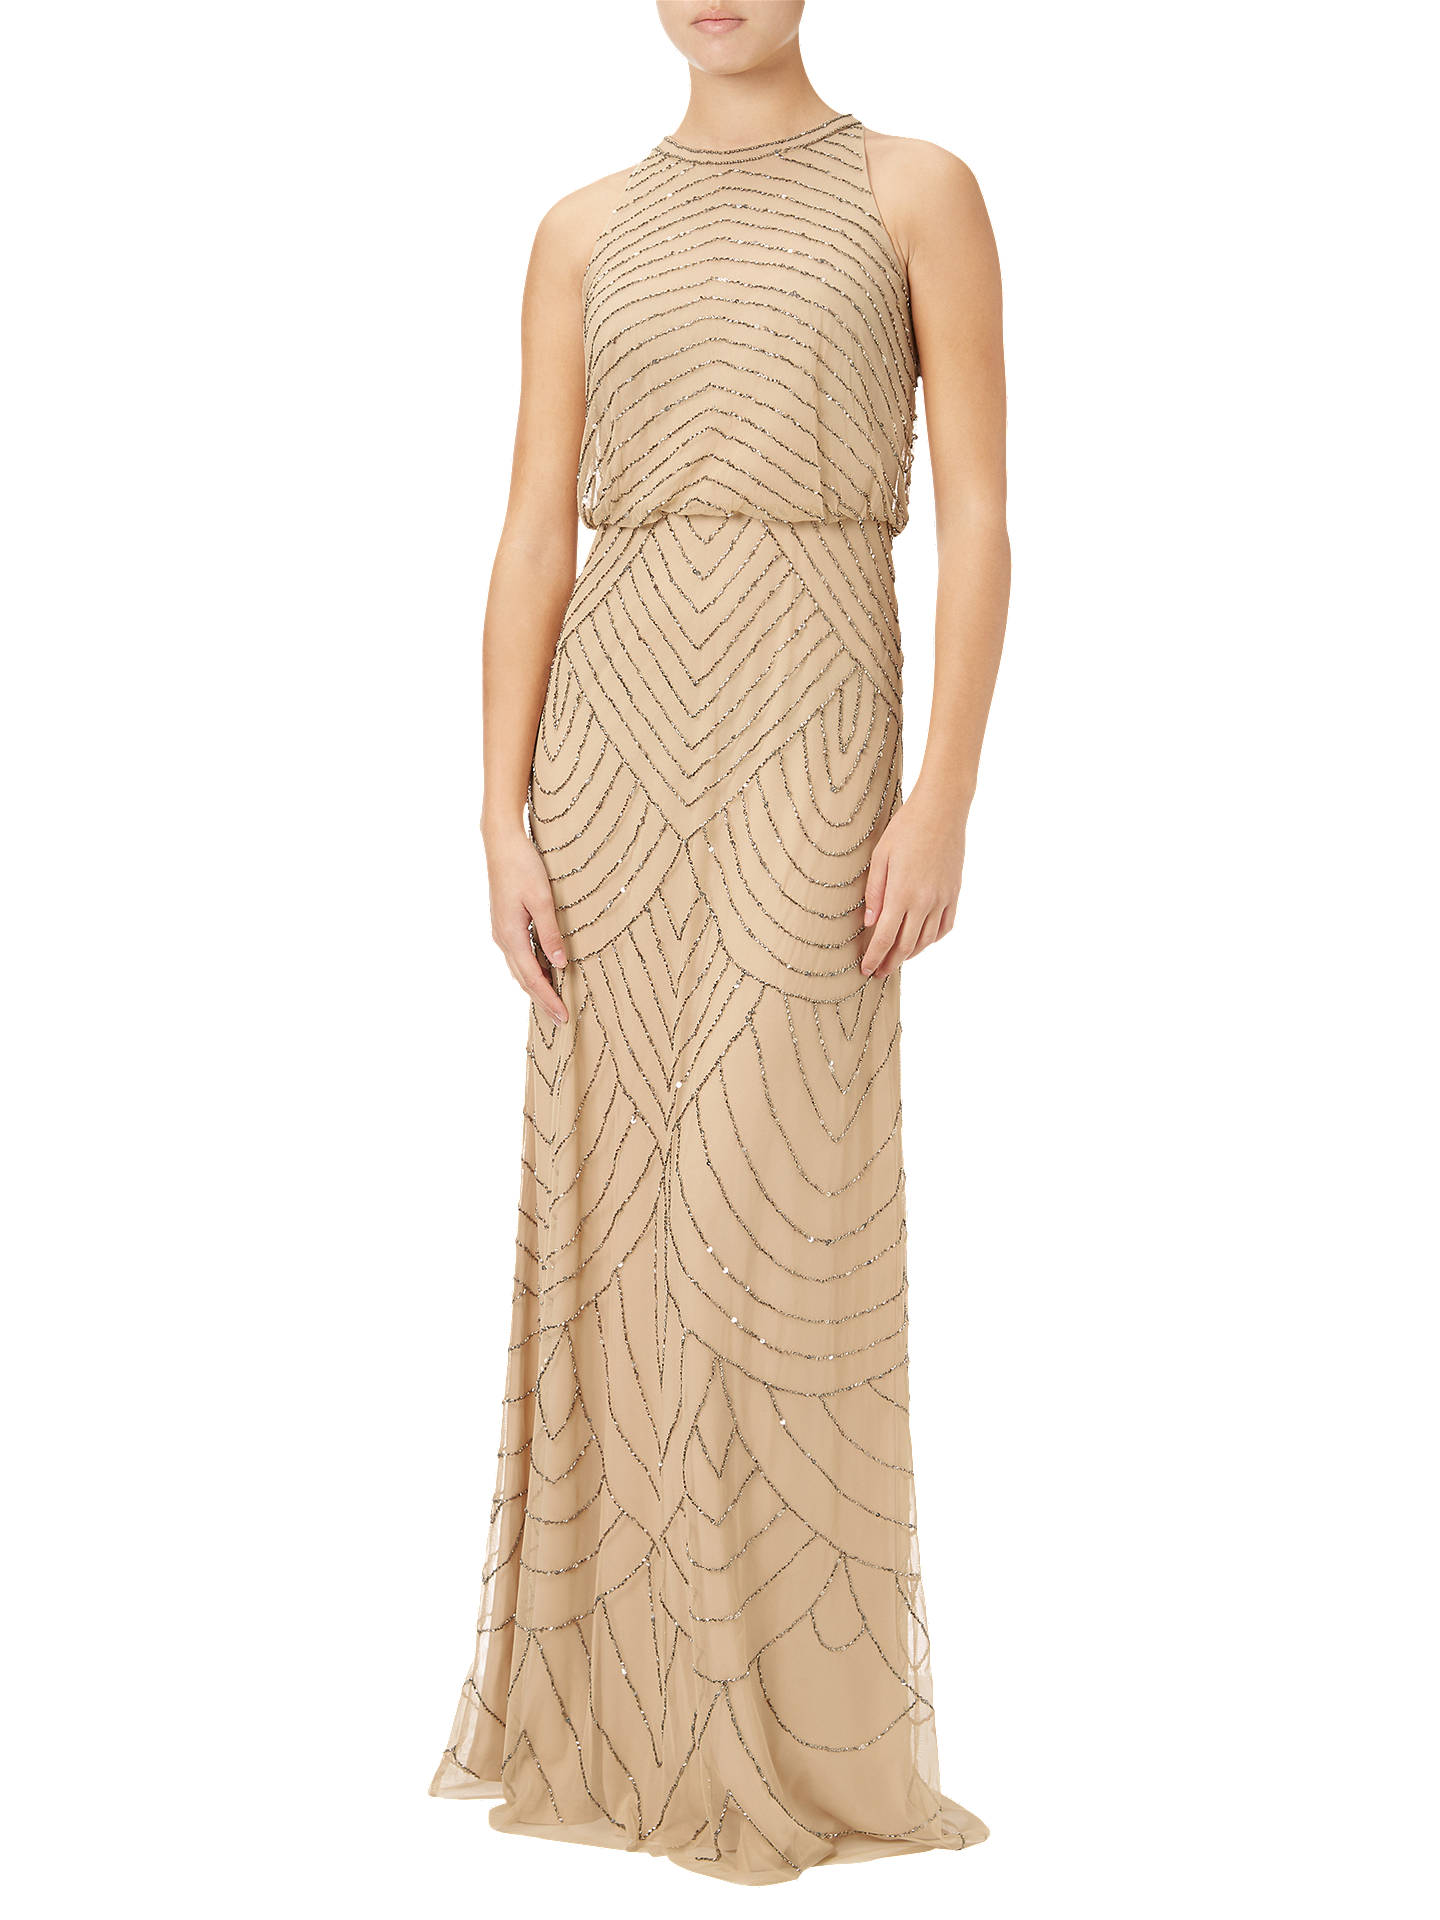 Adrianna Papell Sleeveless Beaded Gown, Nude at John Lewis & Partners